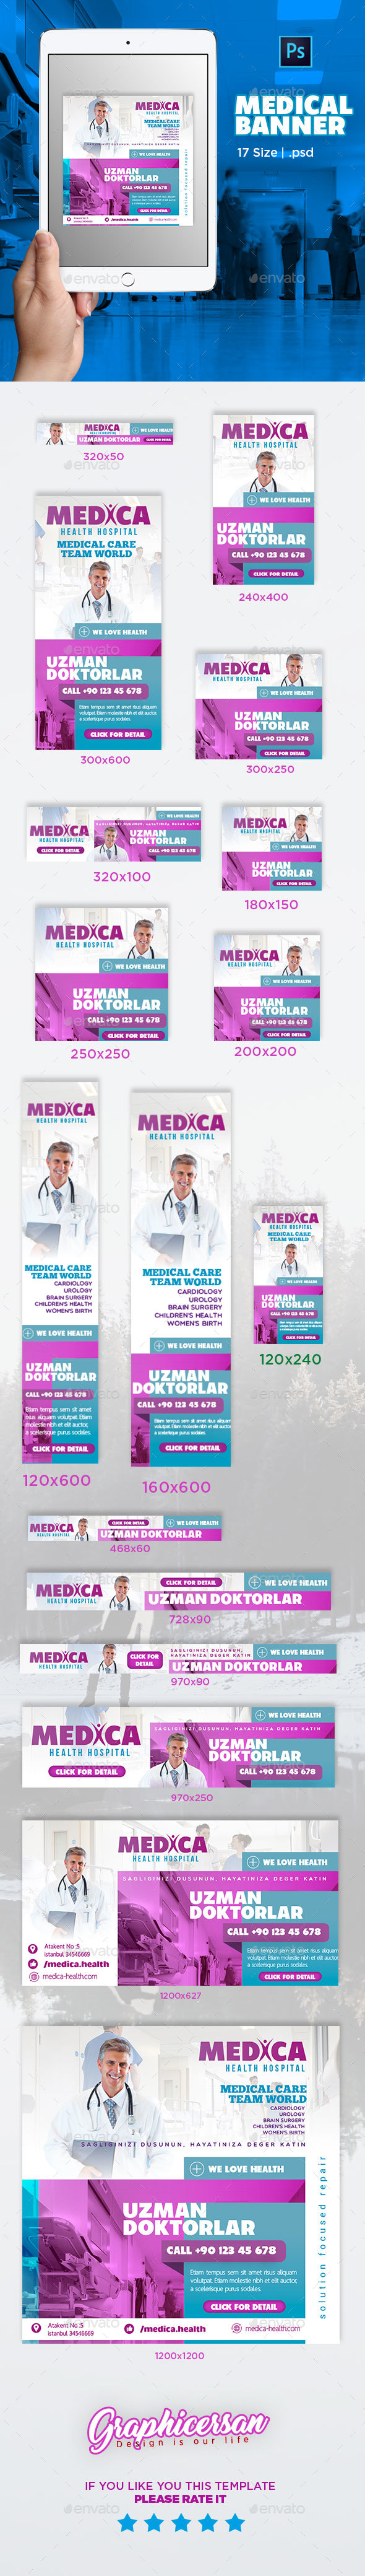 Medical Banner Template - Banners & Ads Web Elements